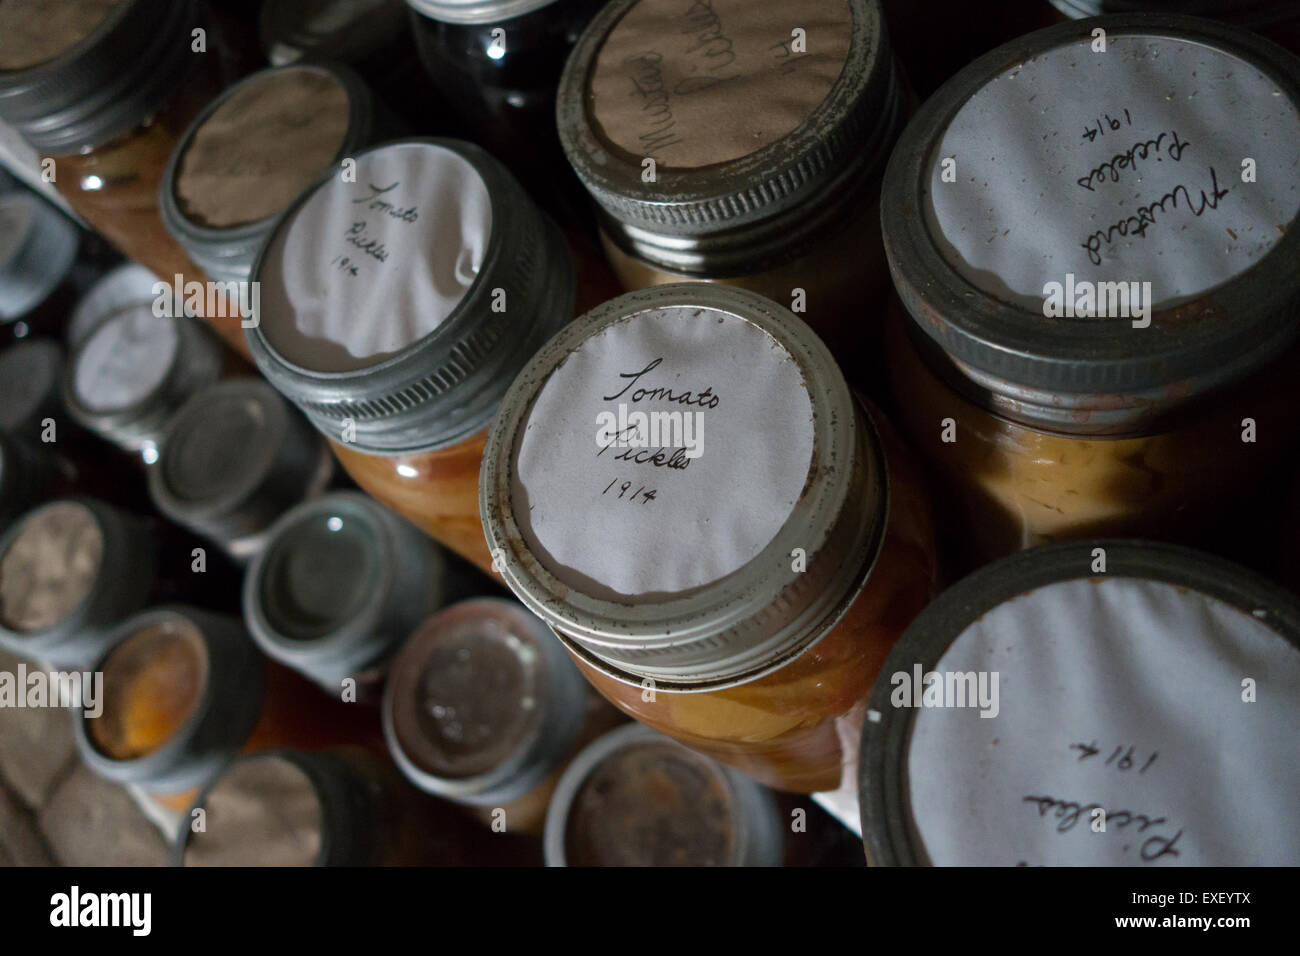 preserved food mason jar label - Stock Image